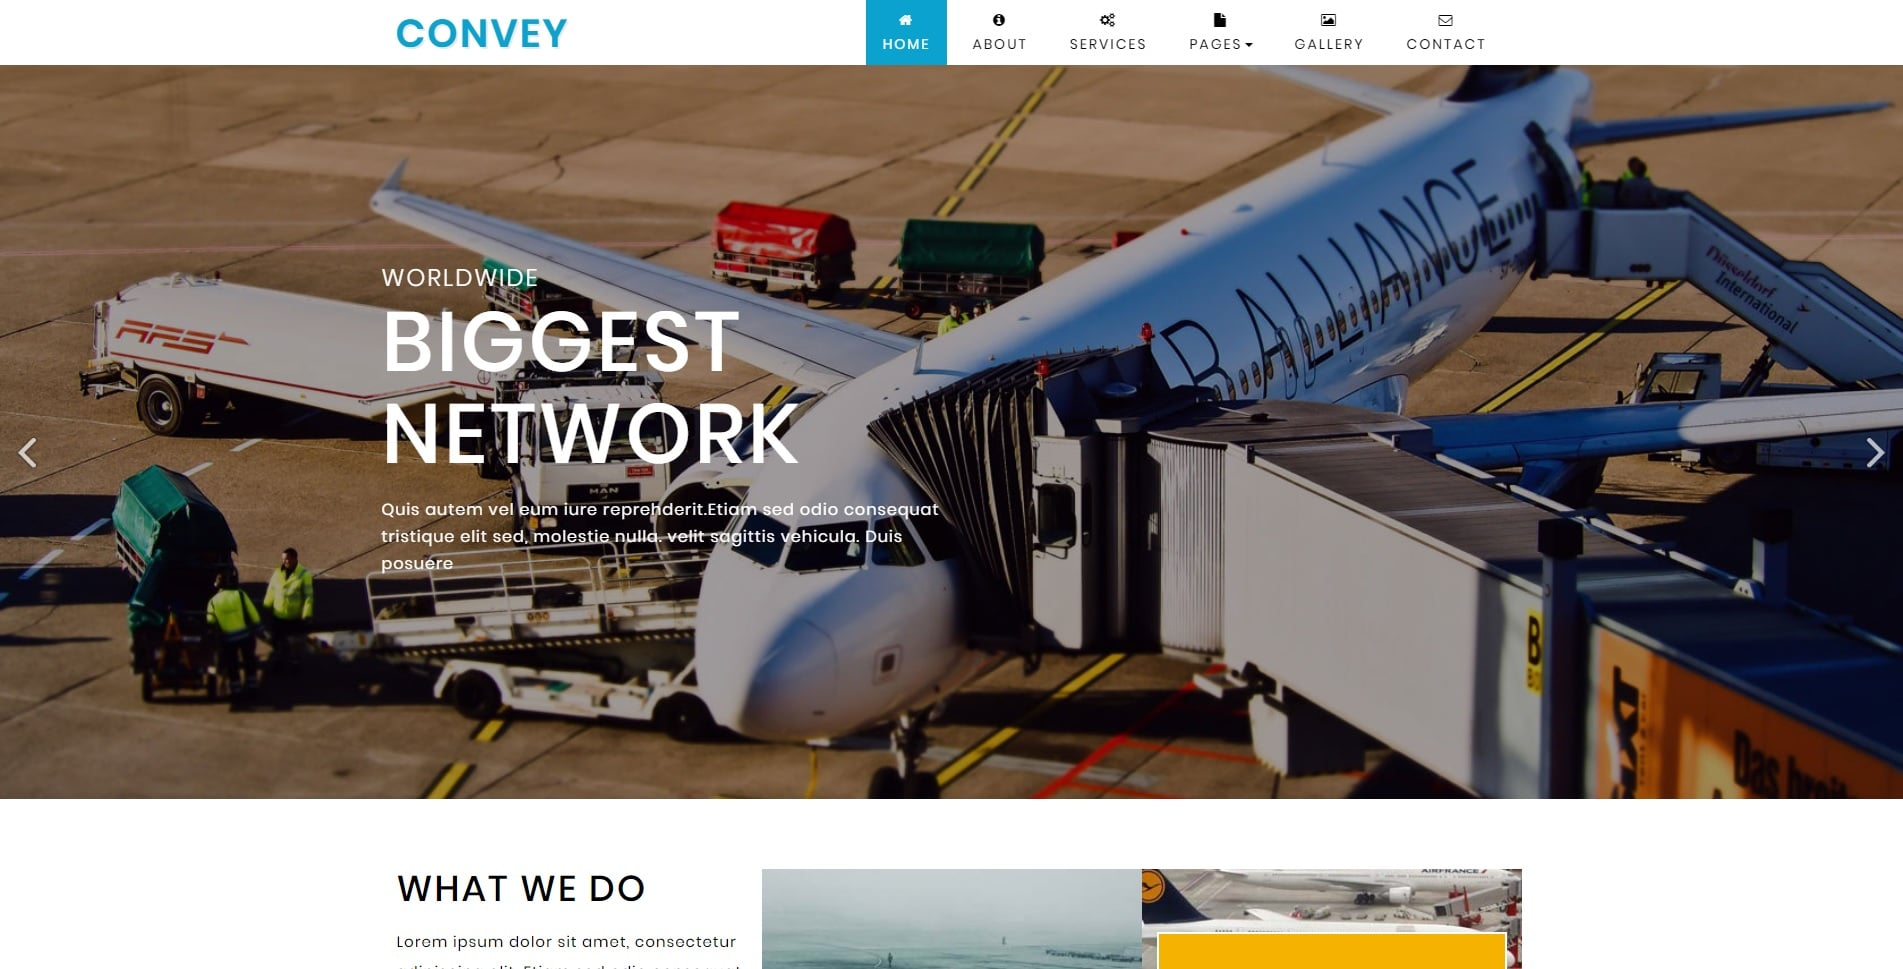 free-trasportation-website-template-convey